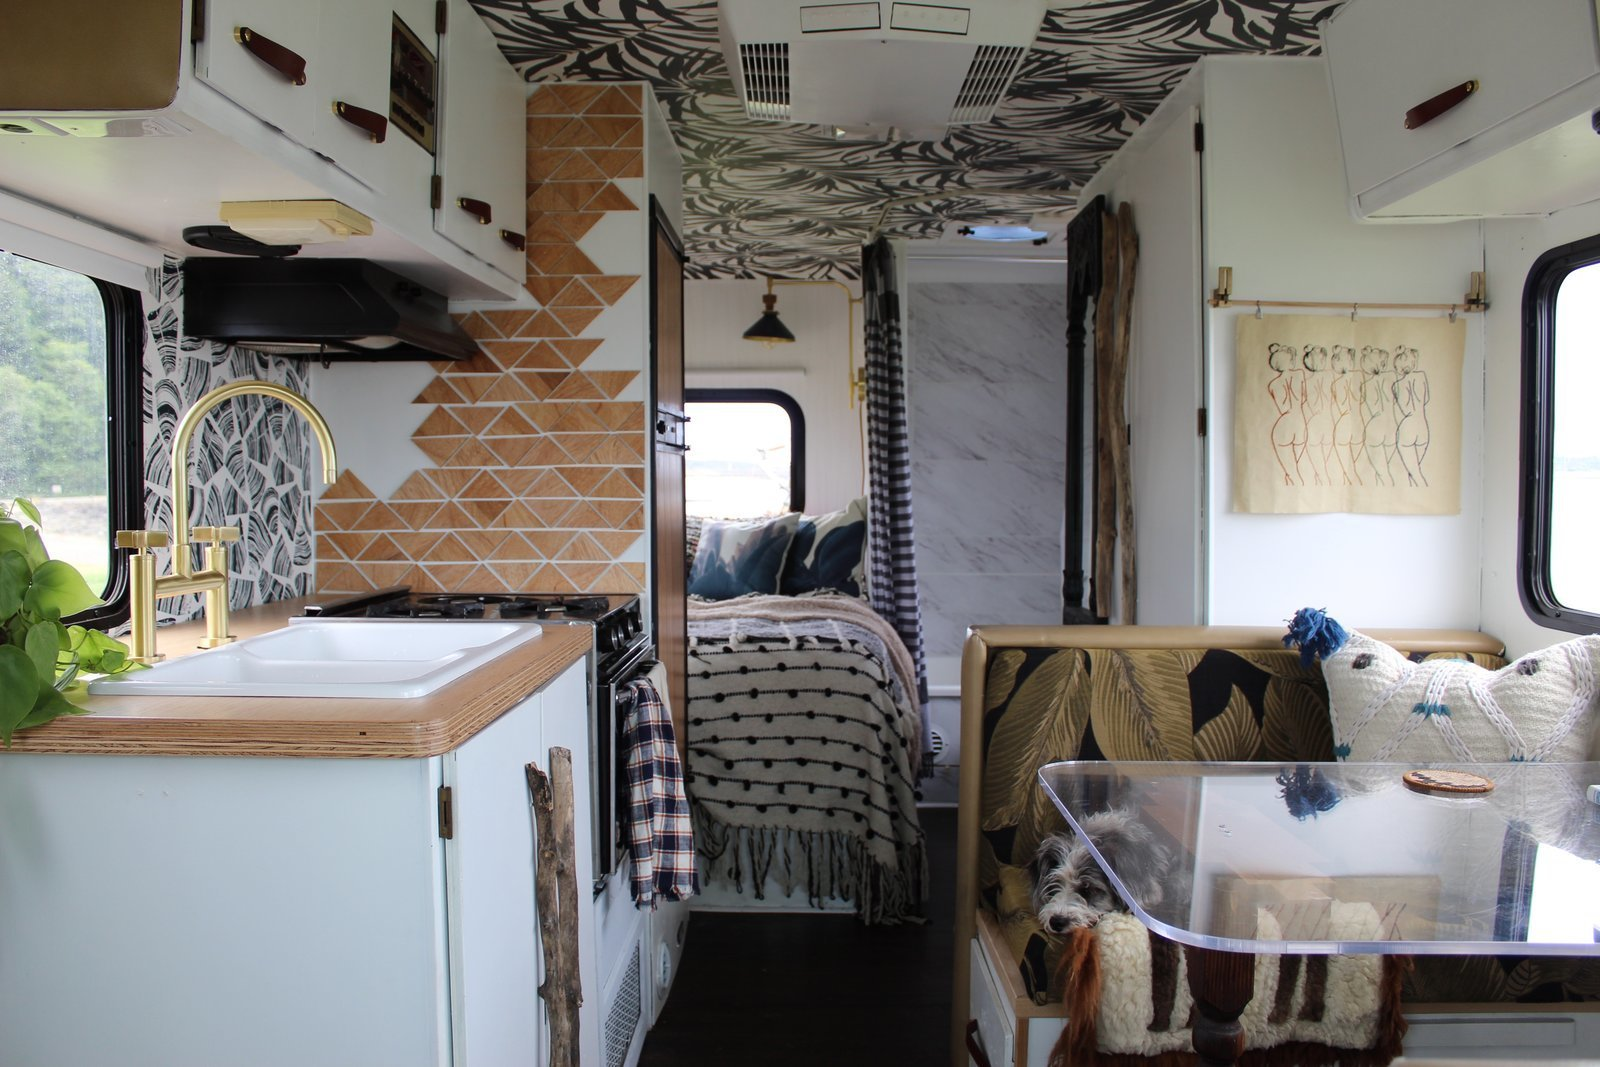 A Portland Couple Renovate a 1982 RV, Turning It Into Their New Home ...